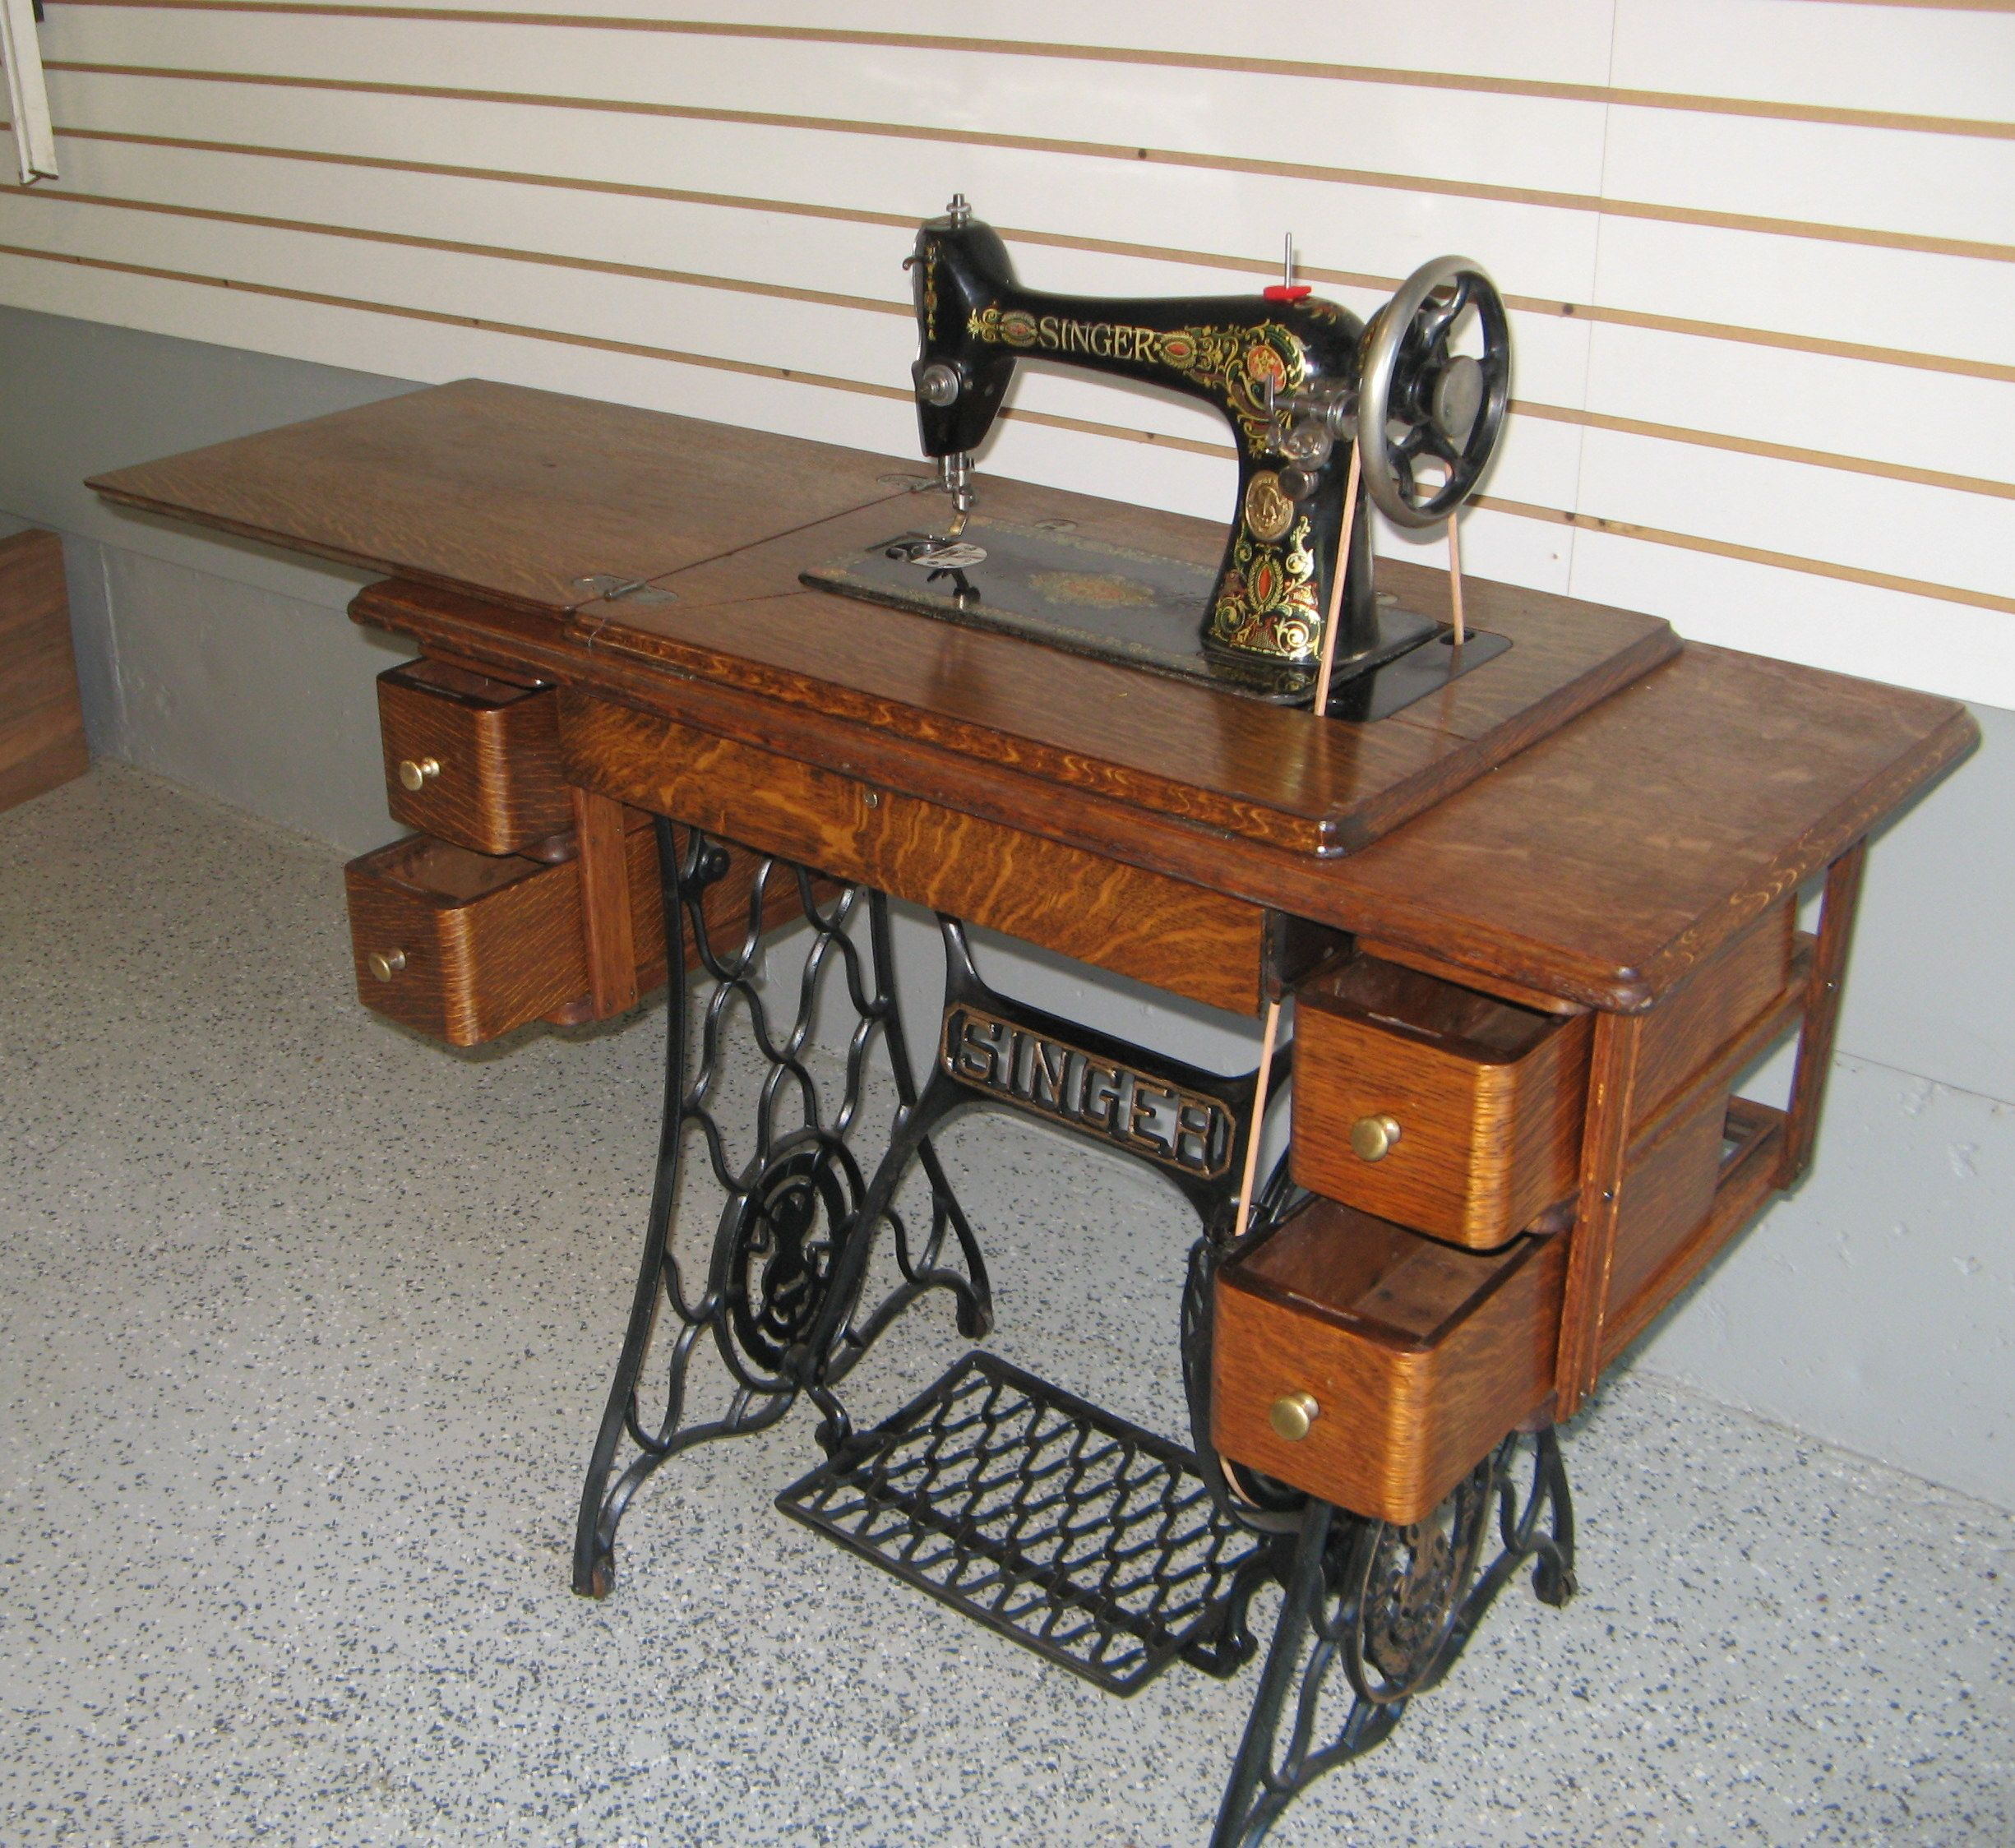 Early 1900s Singer Treadle Sewing Machine With 5 Drawer Tiger Oak Cabinet After Restoratio Antique Sewing Table Antique Sewing Machines Sewing Machine Cabinet